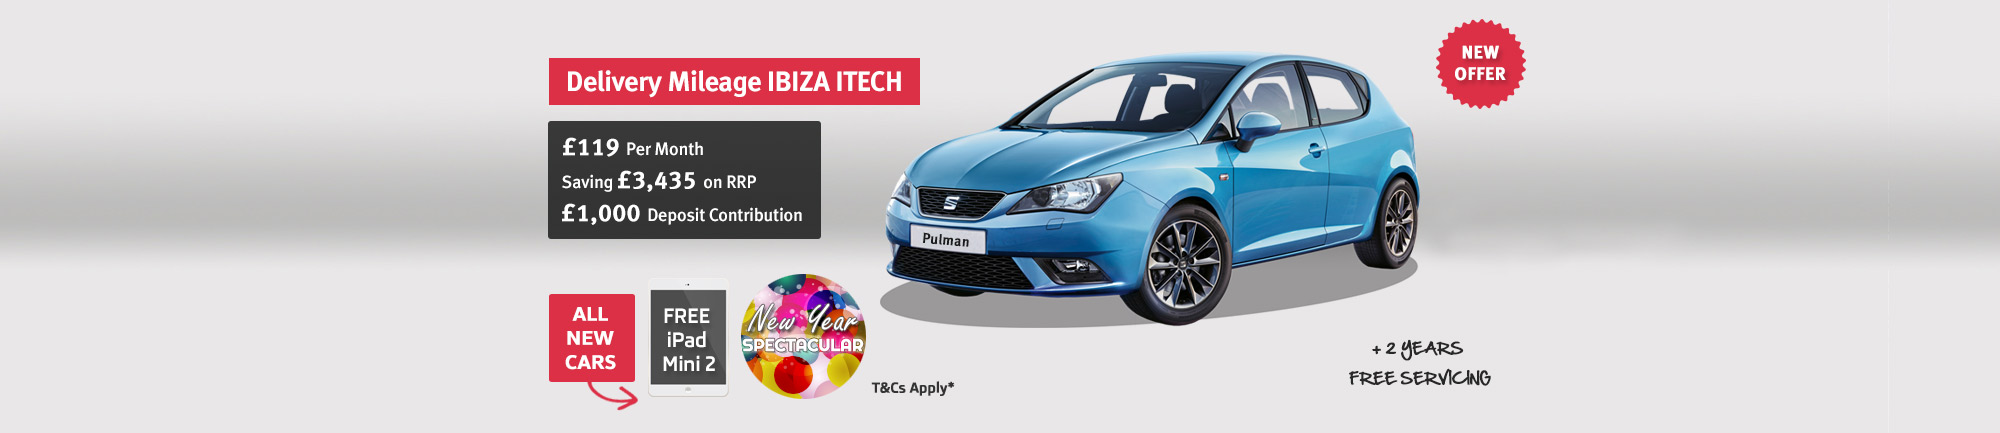 SEAT Ibiza I-tech Delivery Mileage - Saving £3,435 on RRP